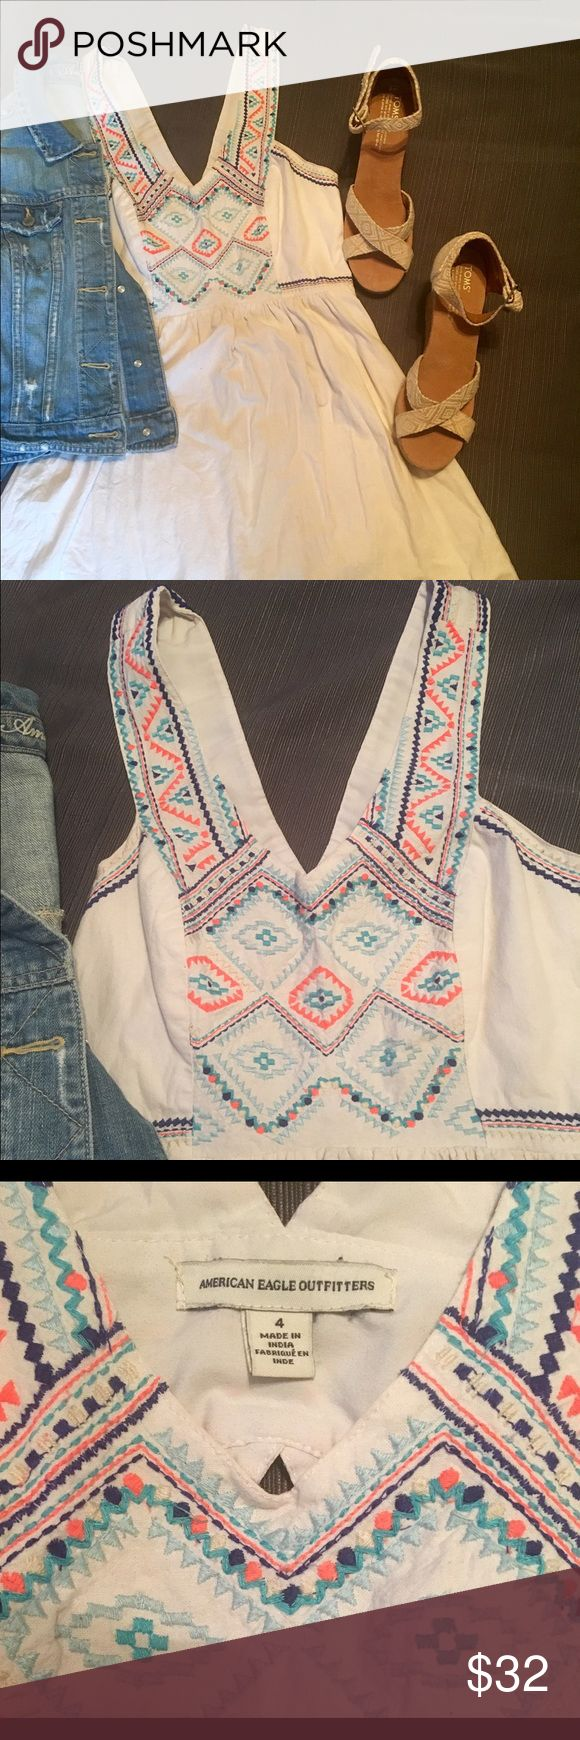 American Eagle Tribal Print Dress One of my favorite dresses, but haven't been wearing it lately so it's time for it to find a new home 😊 Great pattern and design. Color is white. Good condition. Length is between mini and midi. American Eagle Outfitters Dresses Mini